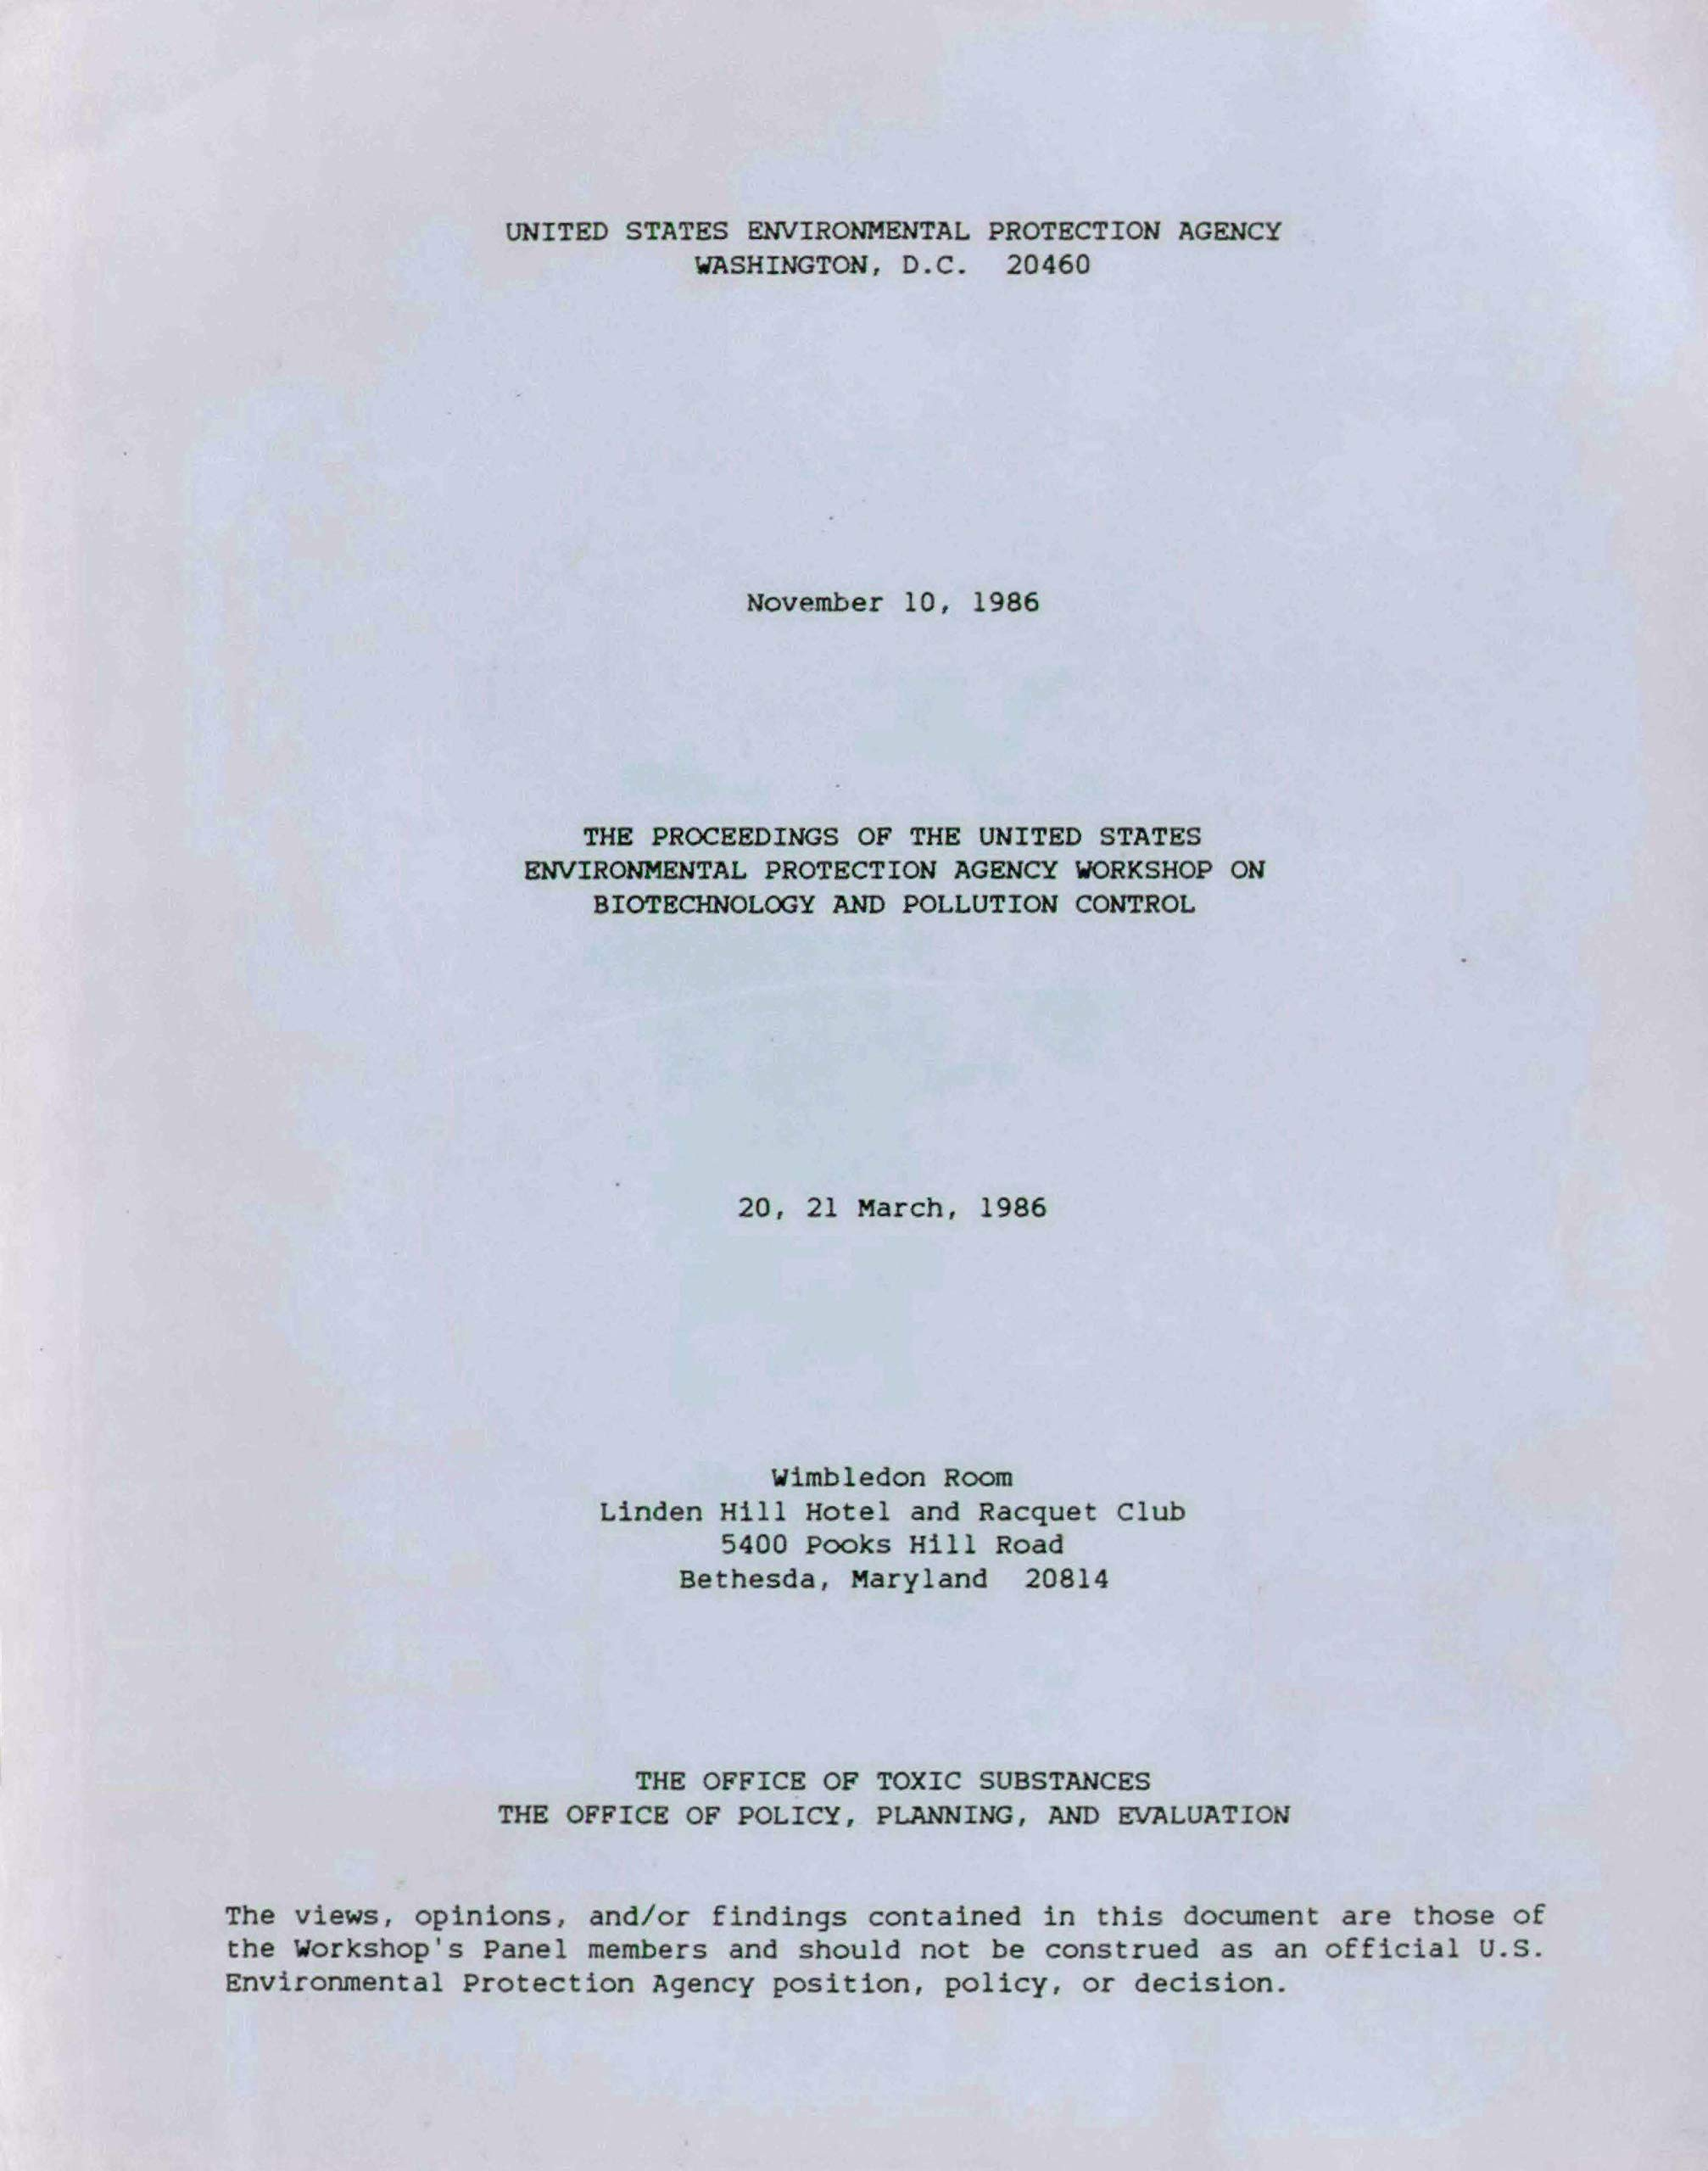 Proceedings of the United States Environmental Protection Agency Workshop on Biotechnology and Pollution Control - 20 21 March 1986 Linden Hill Hotel and Racquet Club Bethesda Maryland